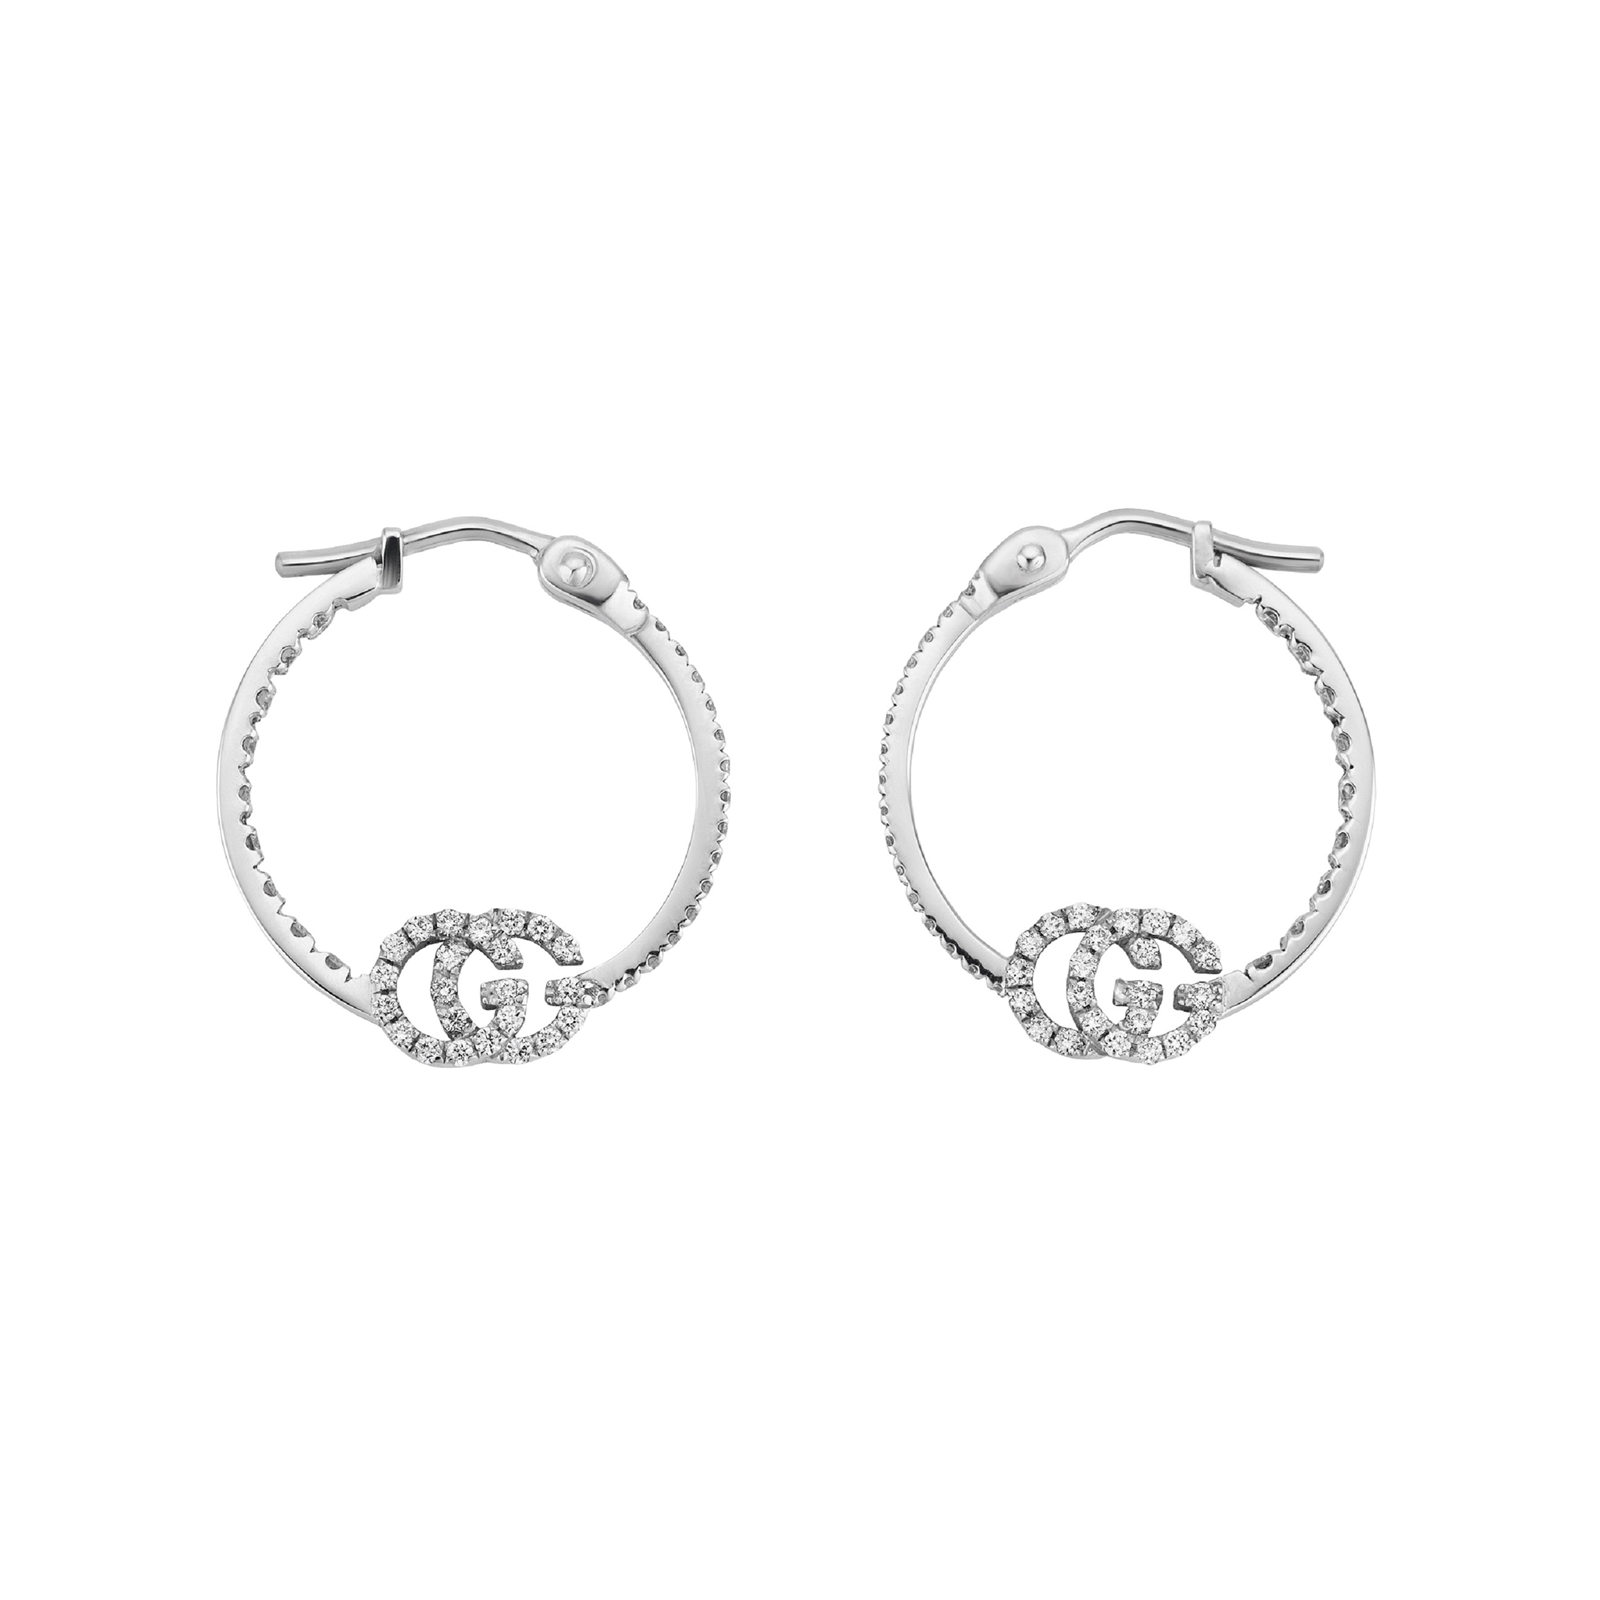 Gucci 18ct White Gold Running G Hoop Earrings